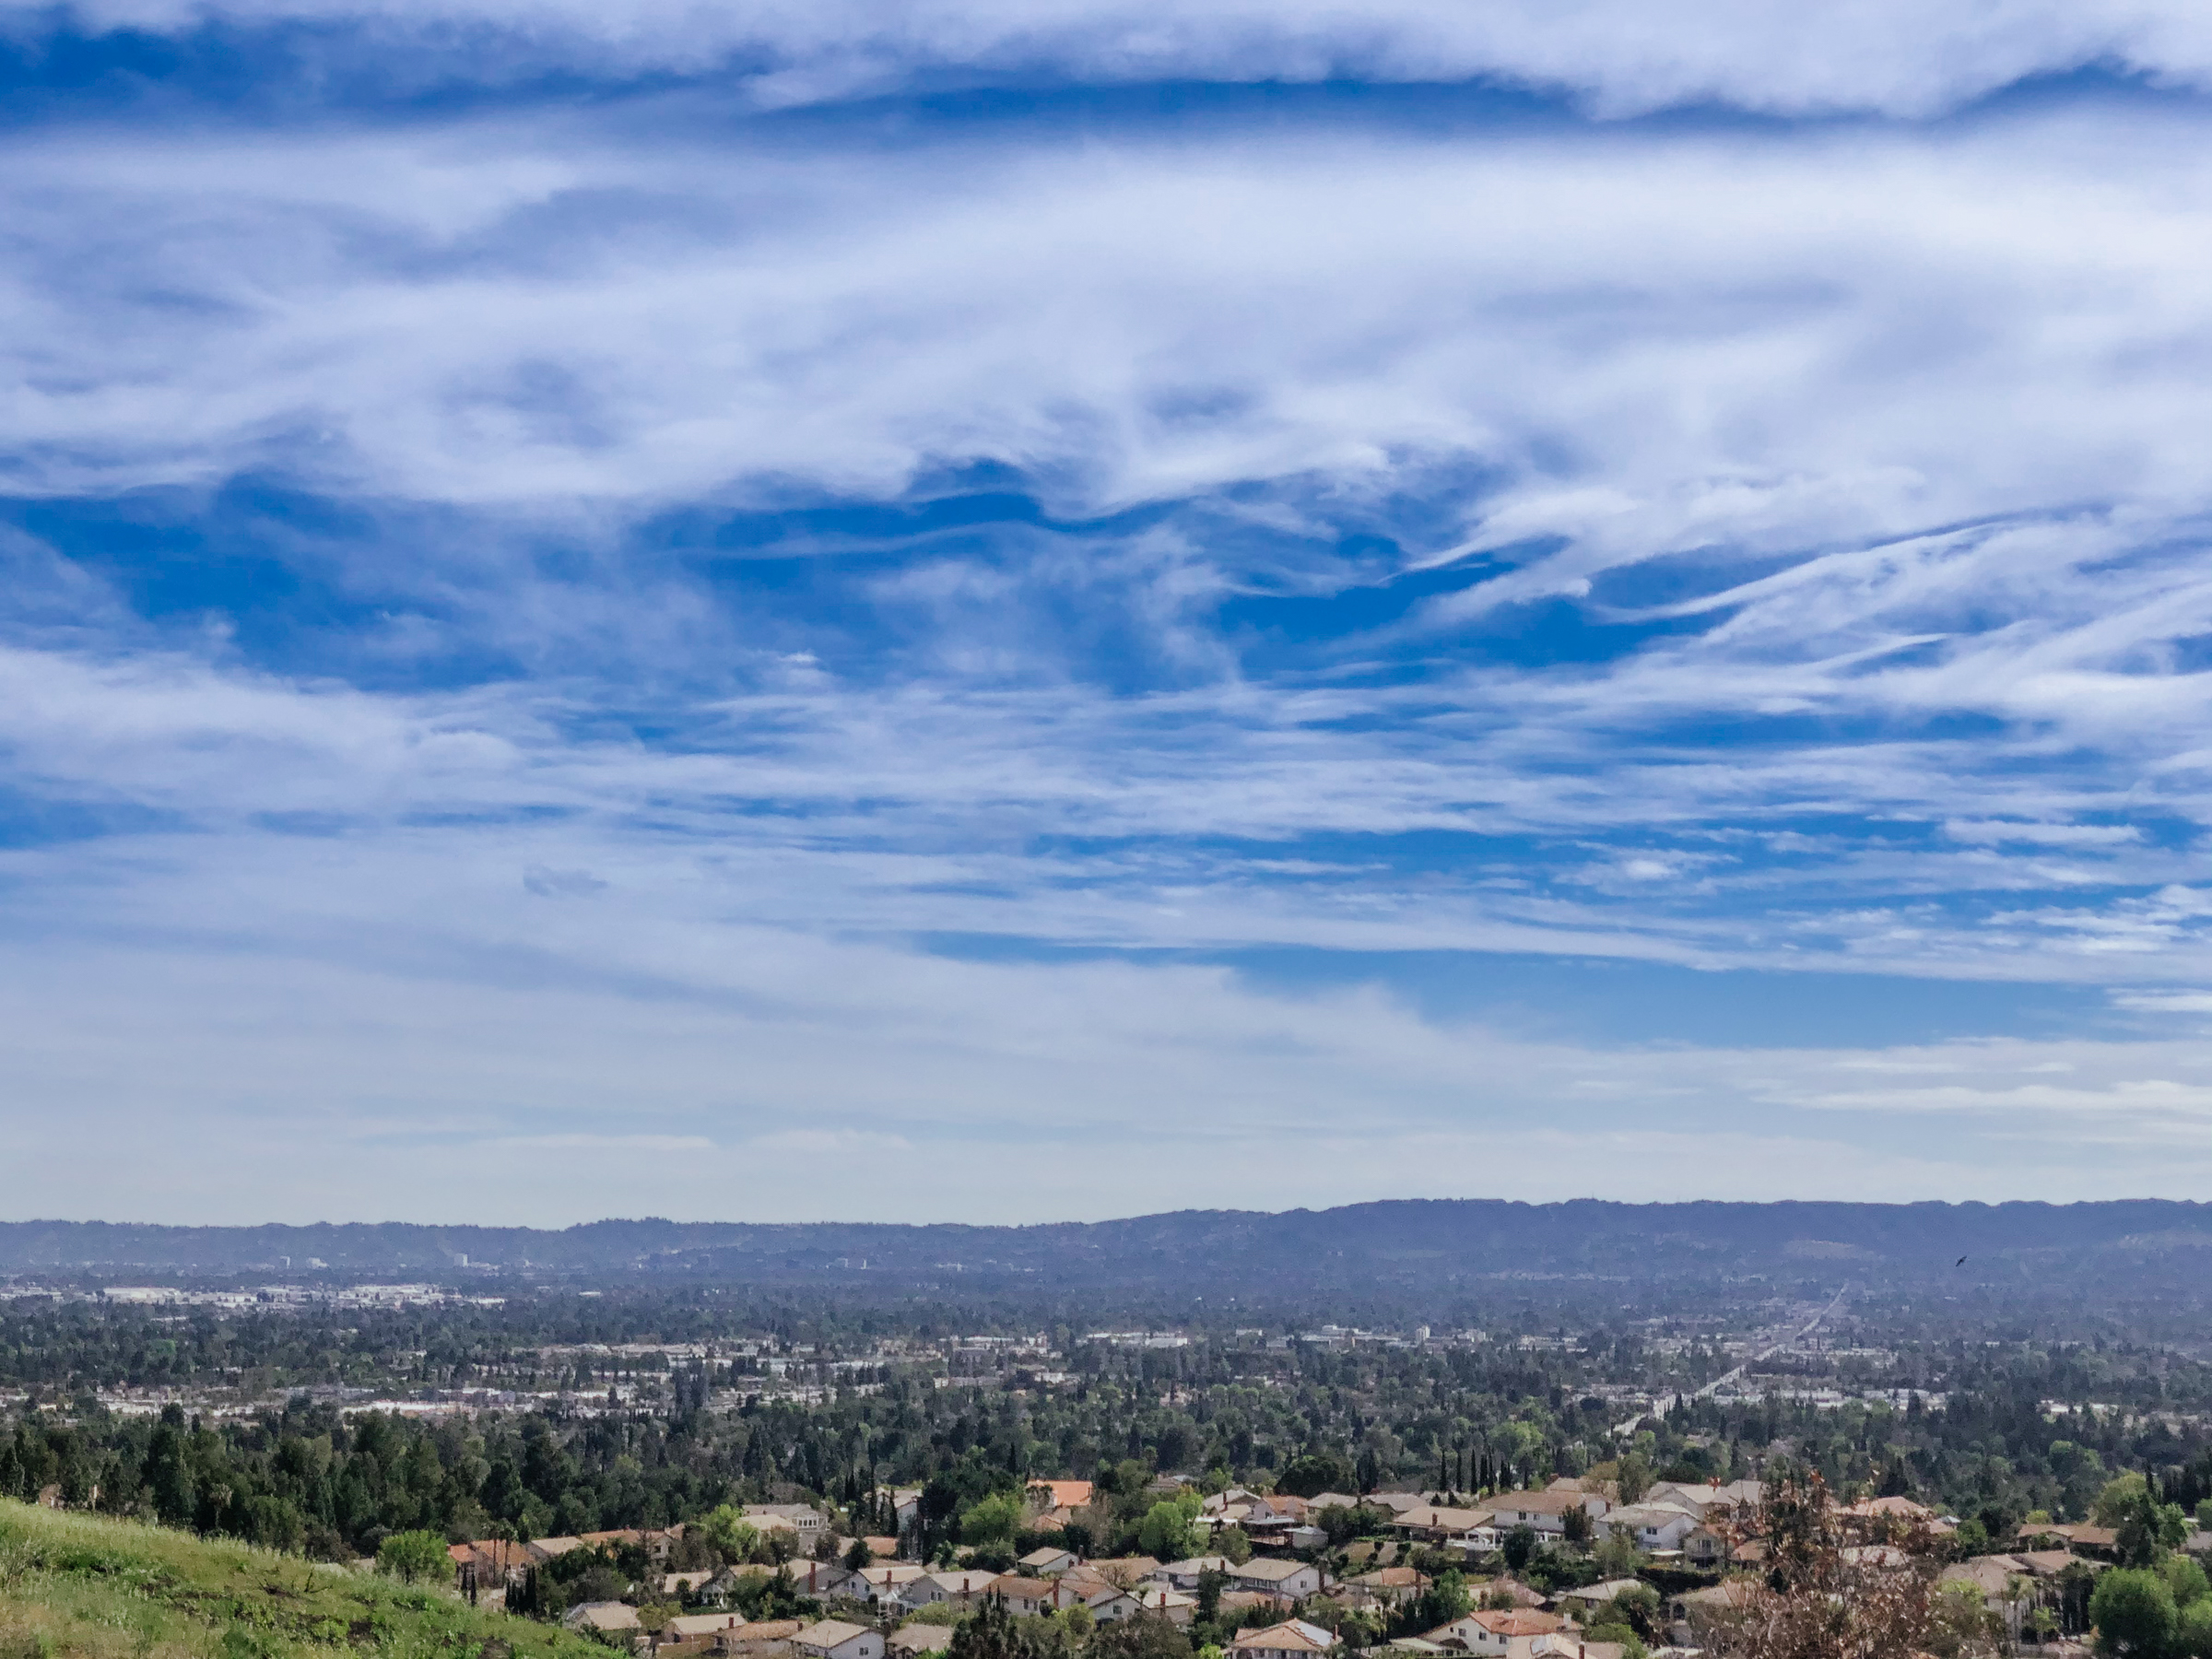 San Fernando Valley view from Porter Ranch